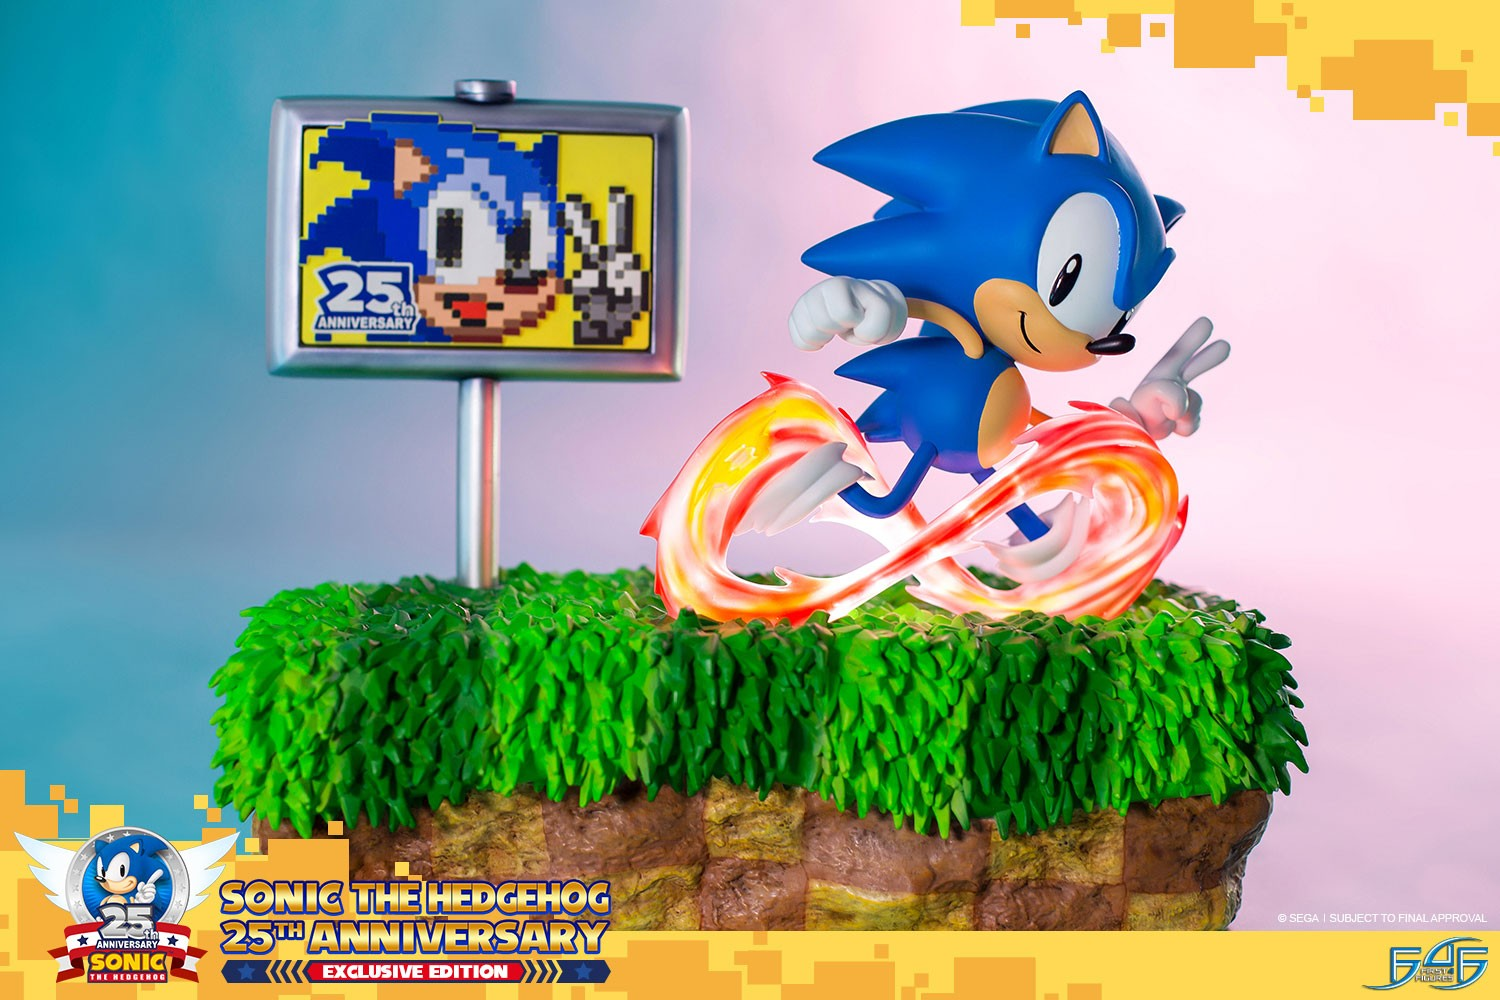 sonic the hedgehog 25th anniversary exclusive